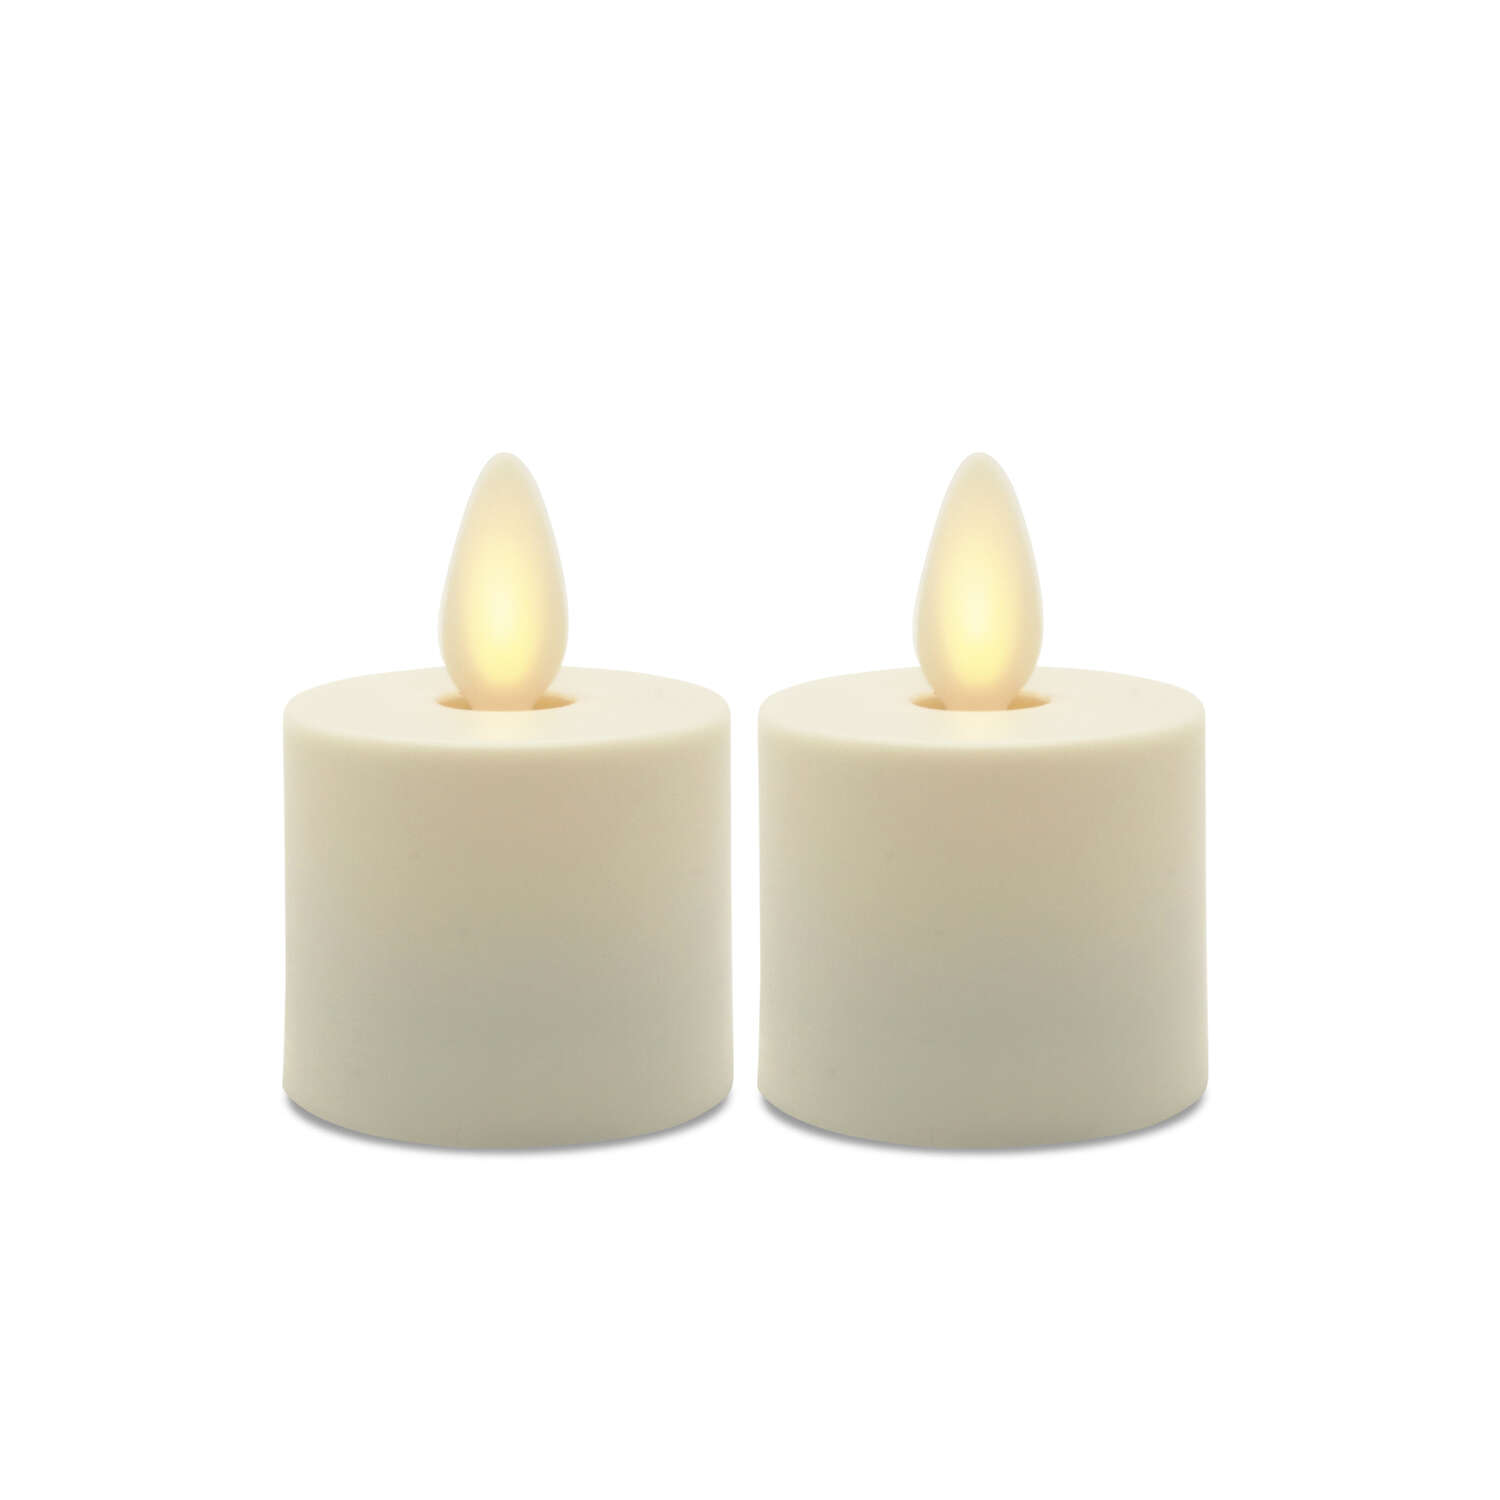 Matchless  Darice  Ivory  Unscented Scent Votive  Flameless Flickering Candle  2 in. H x 1.5 in. Dia